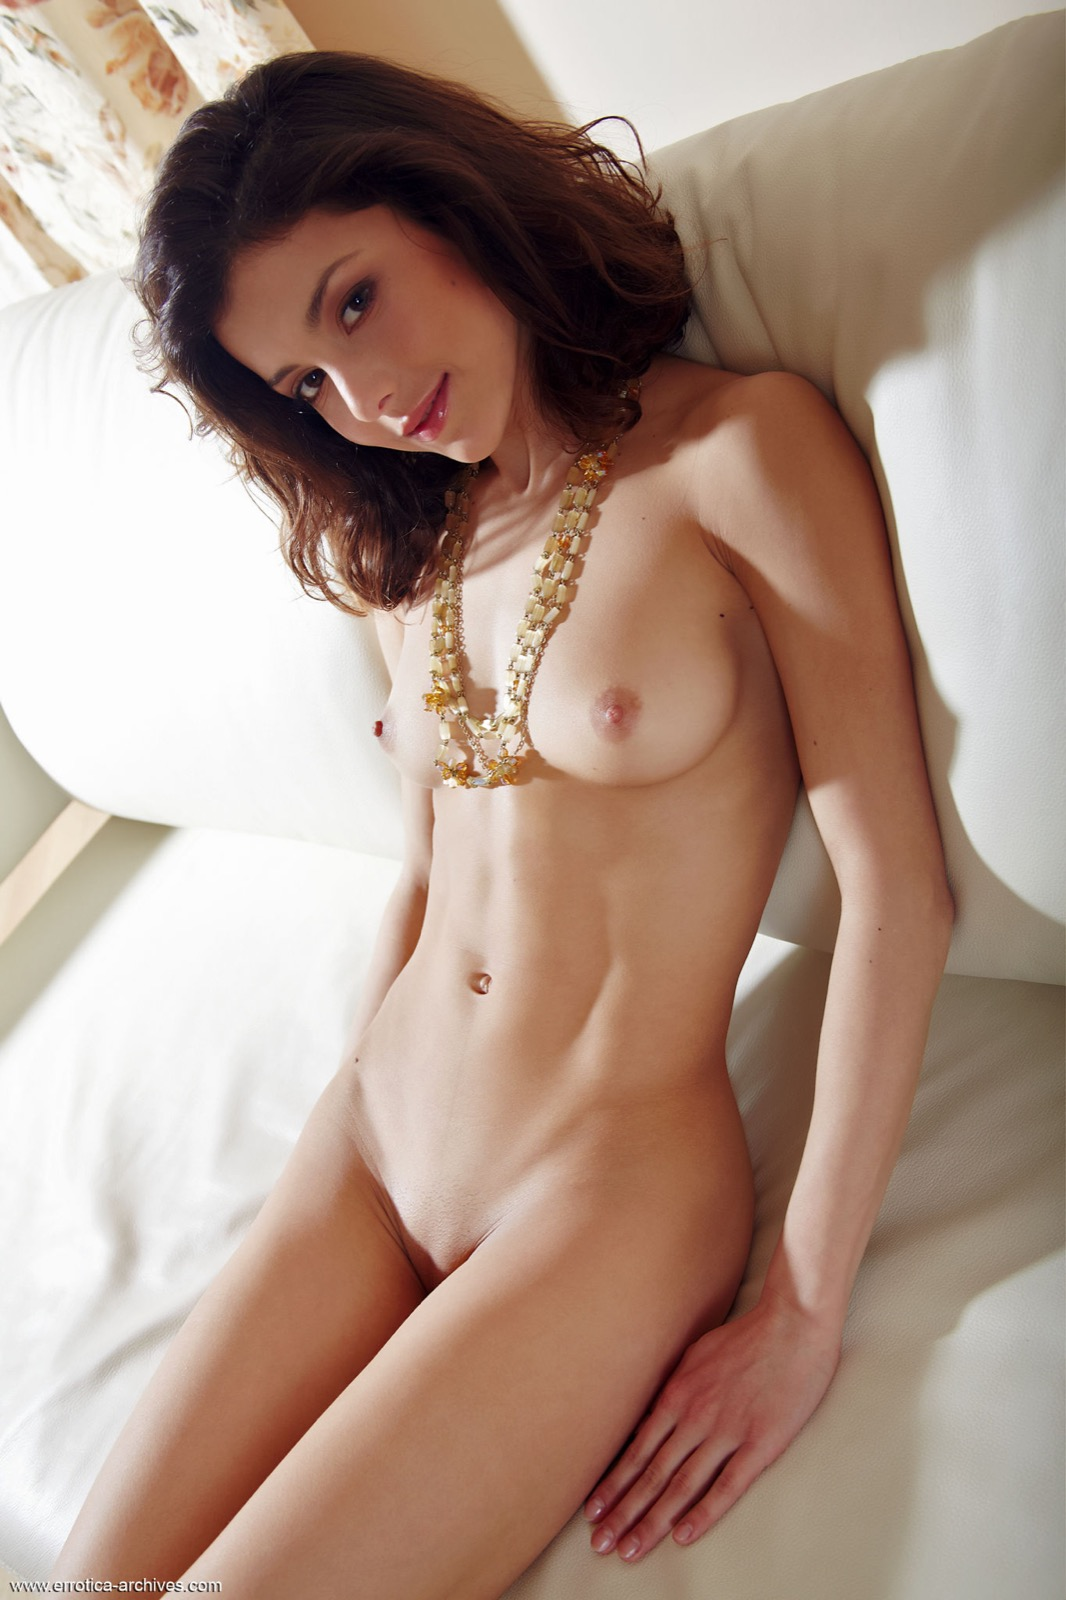 Naked Satin Pics, Nude Girls All Free